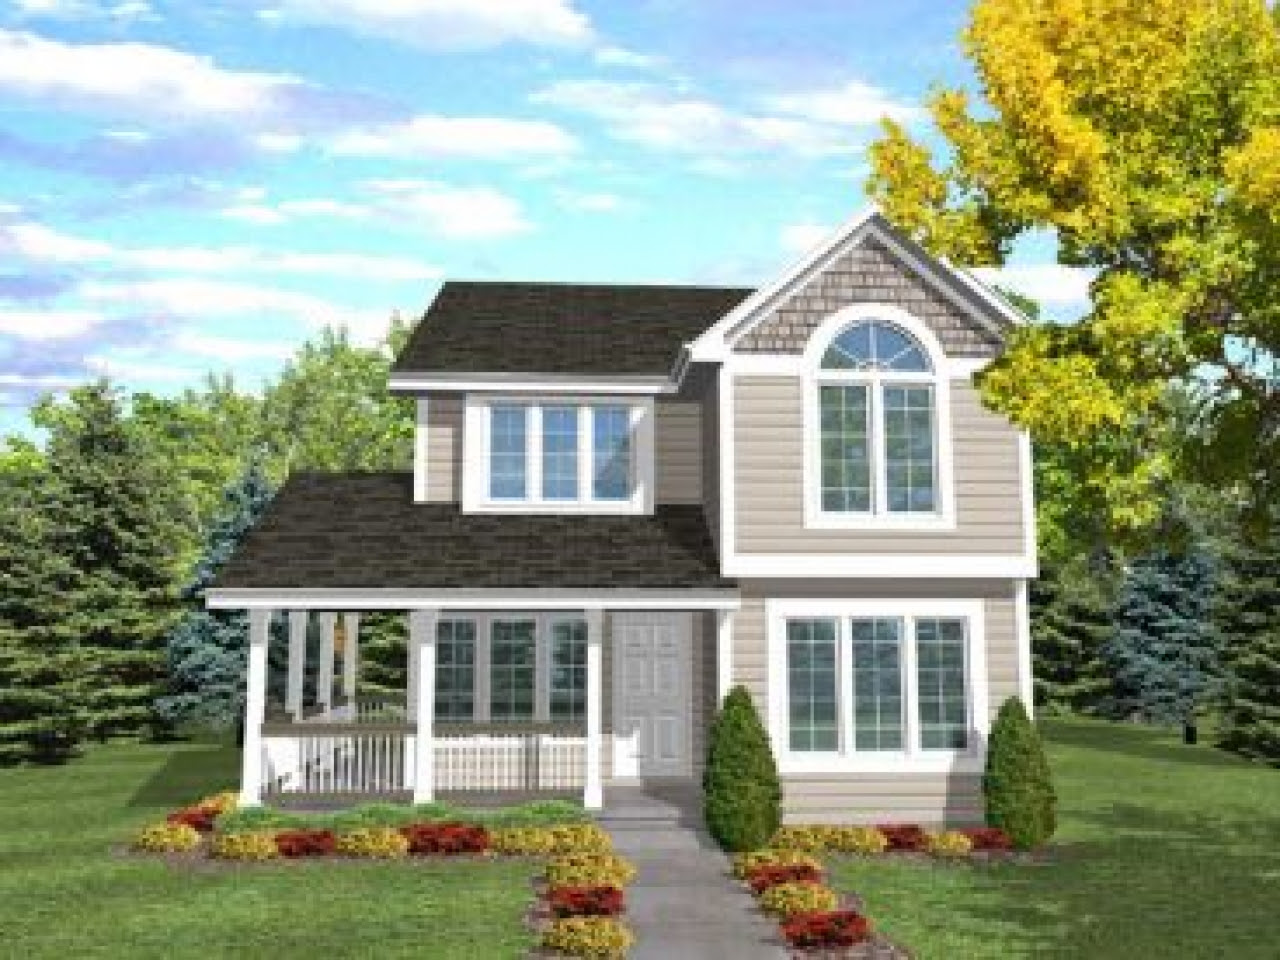 Narrow  Lot  House  Plans  with Front Garage Narrow  Lot  House